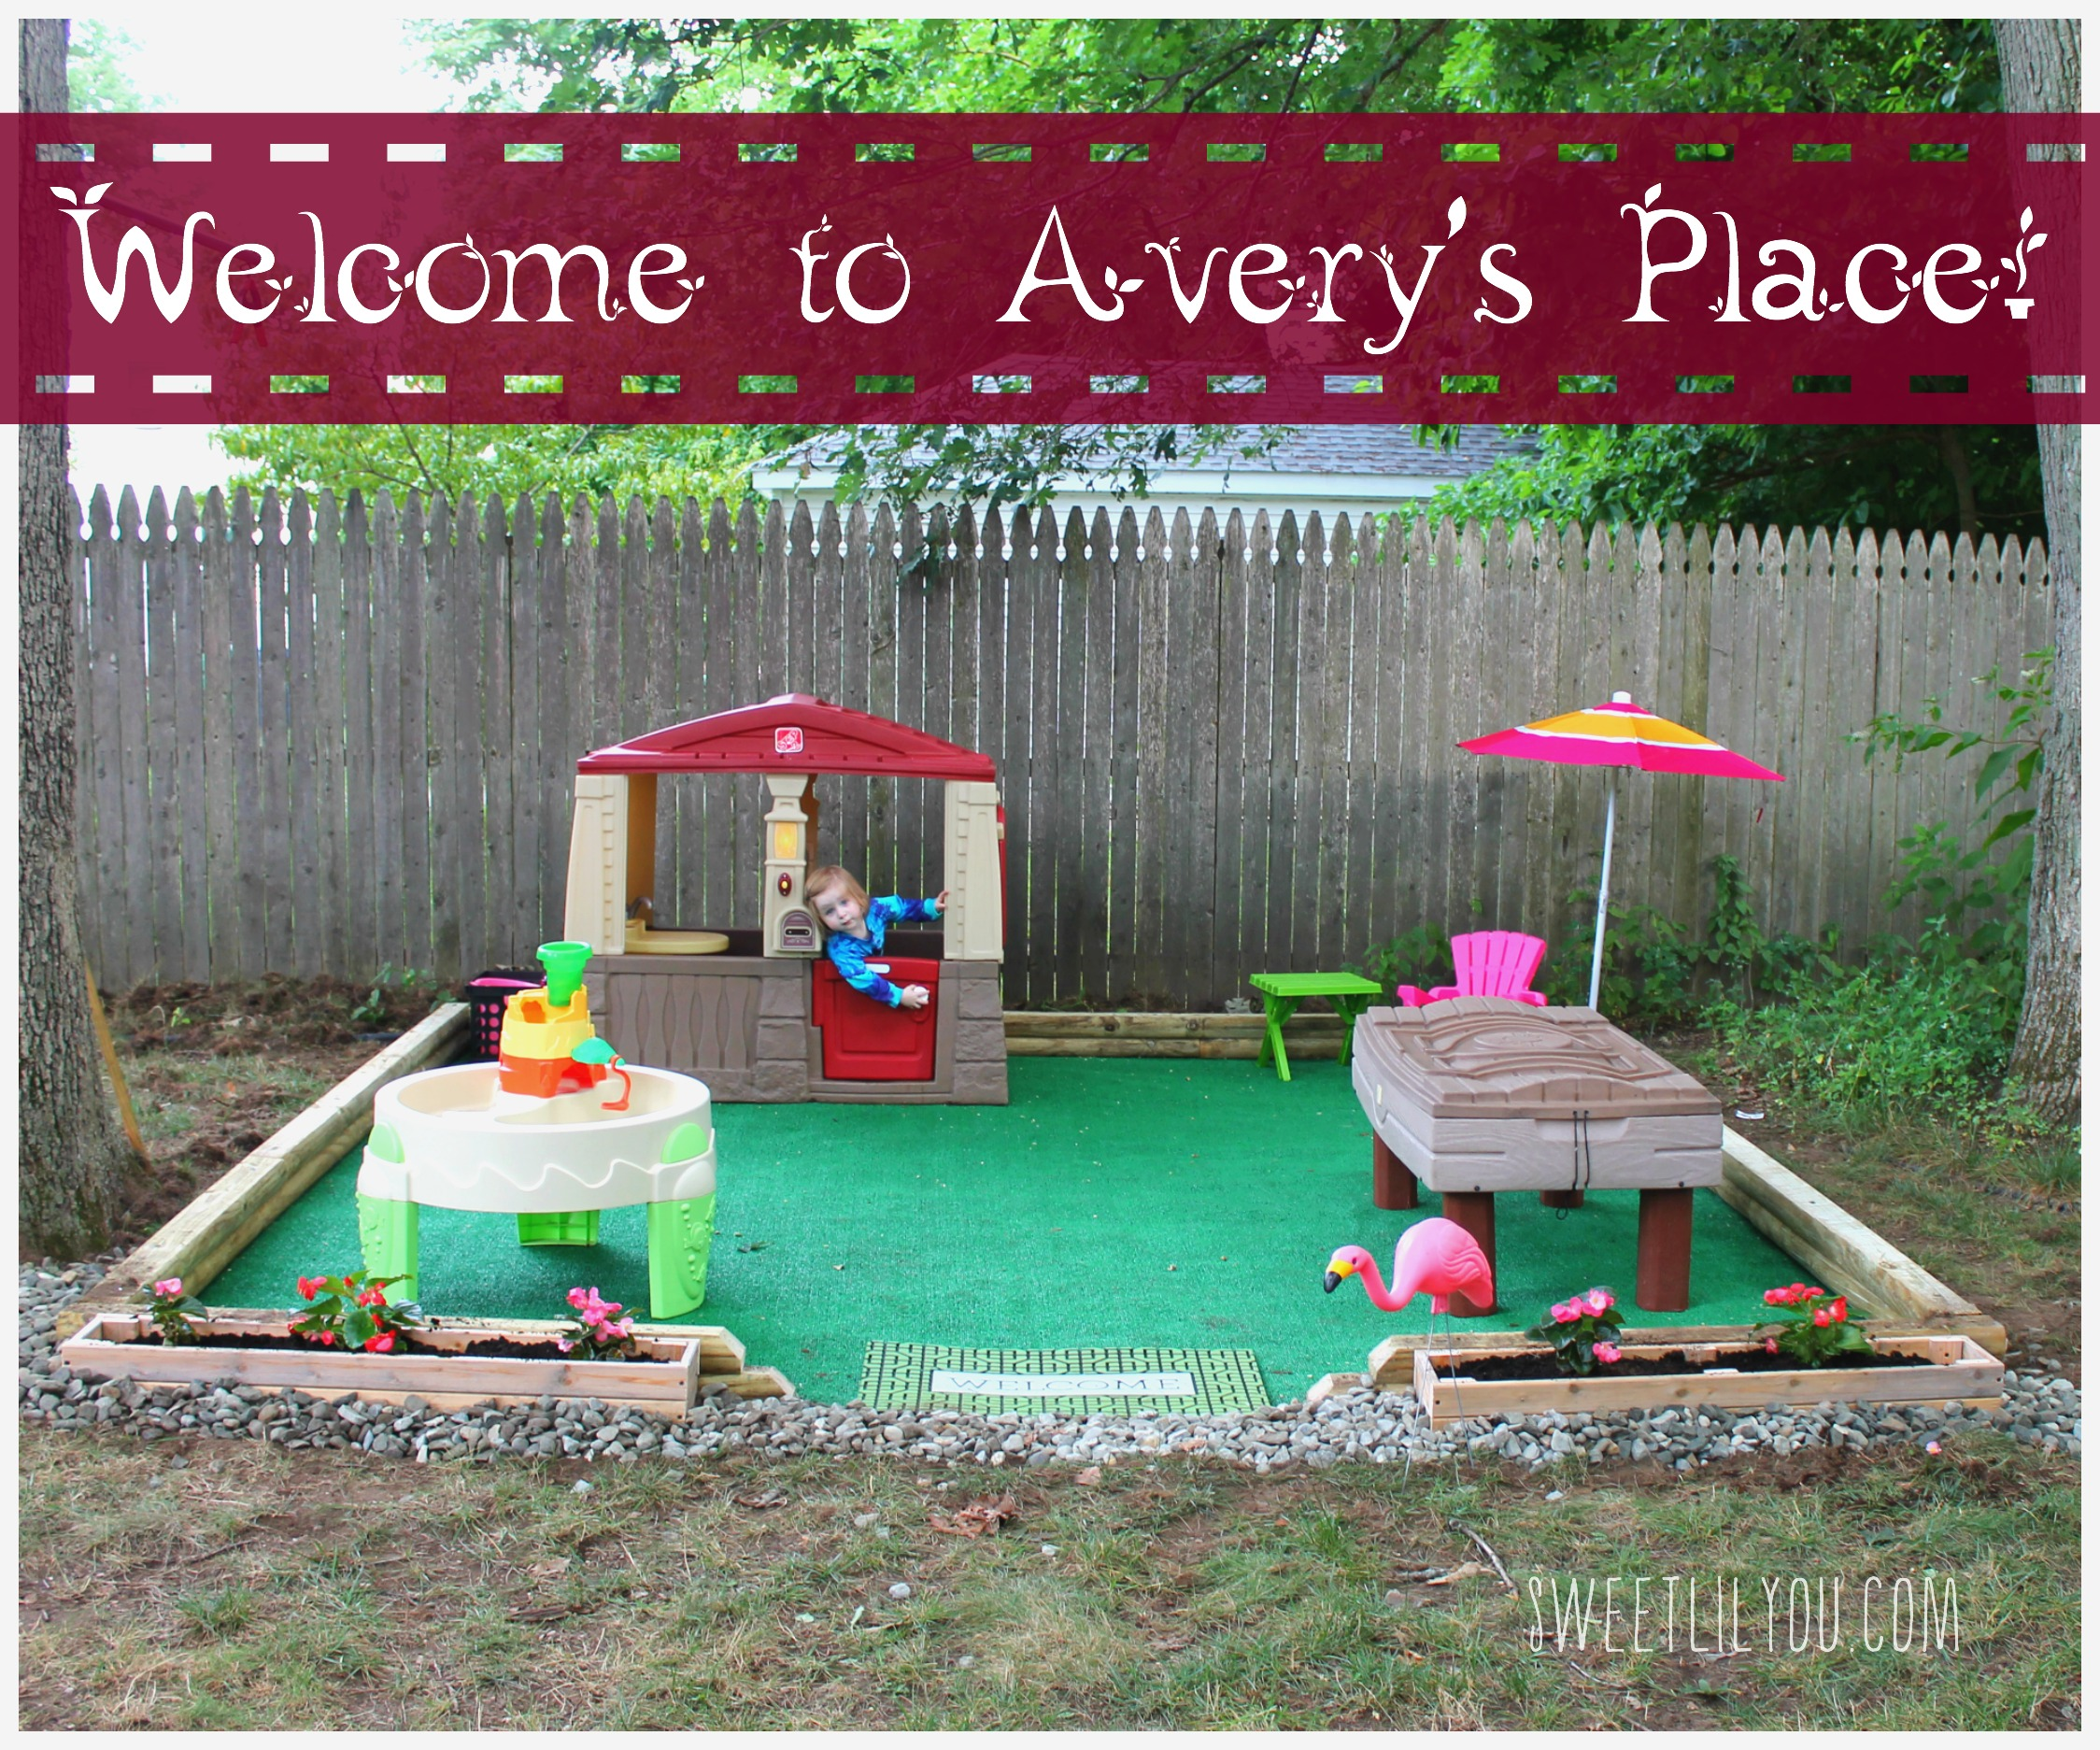 Welcome to Avery's Outdoor Play Space!